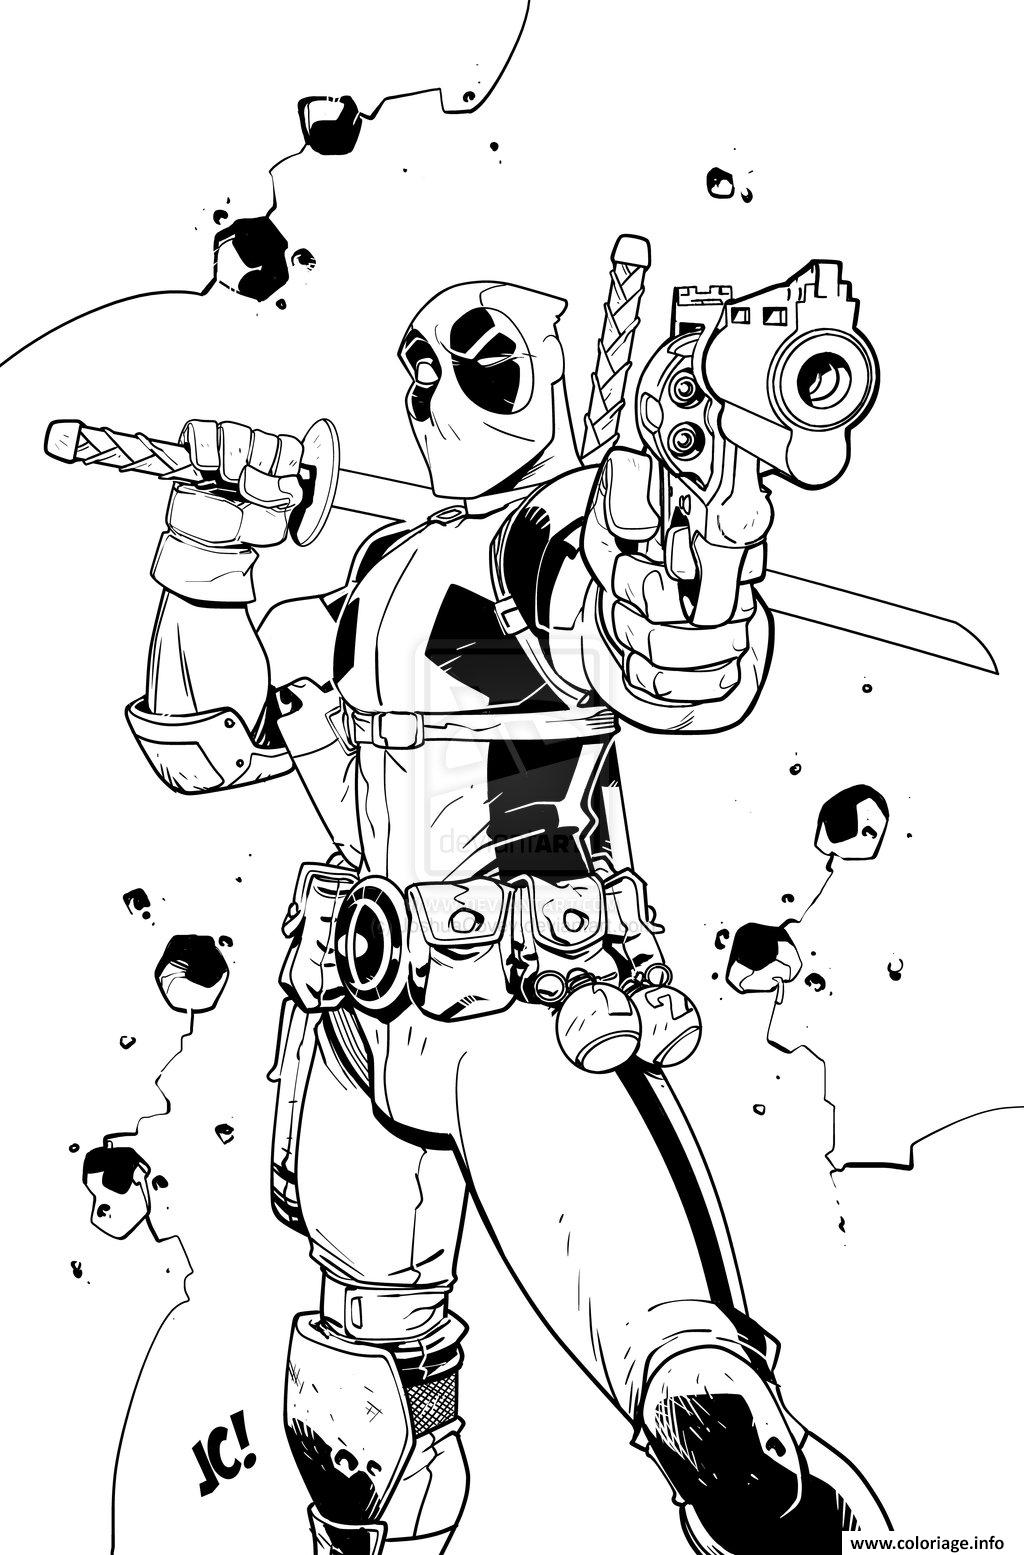 Coloriage Deadpool 2 January 12 2018 Movie Dessin à Imprimer